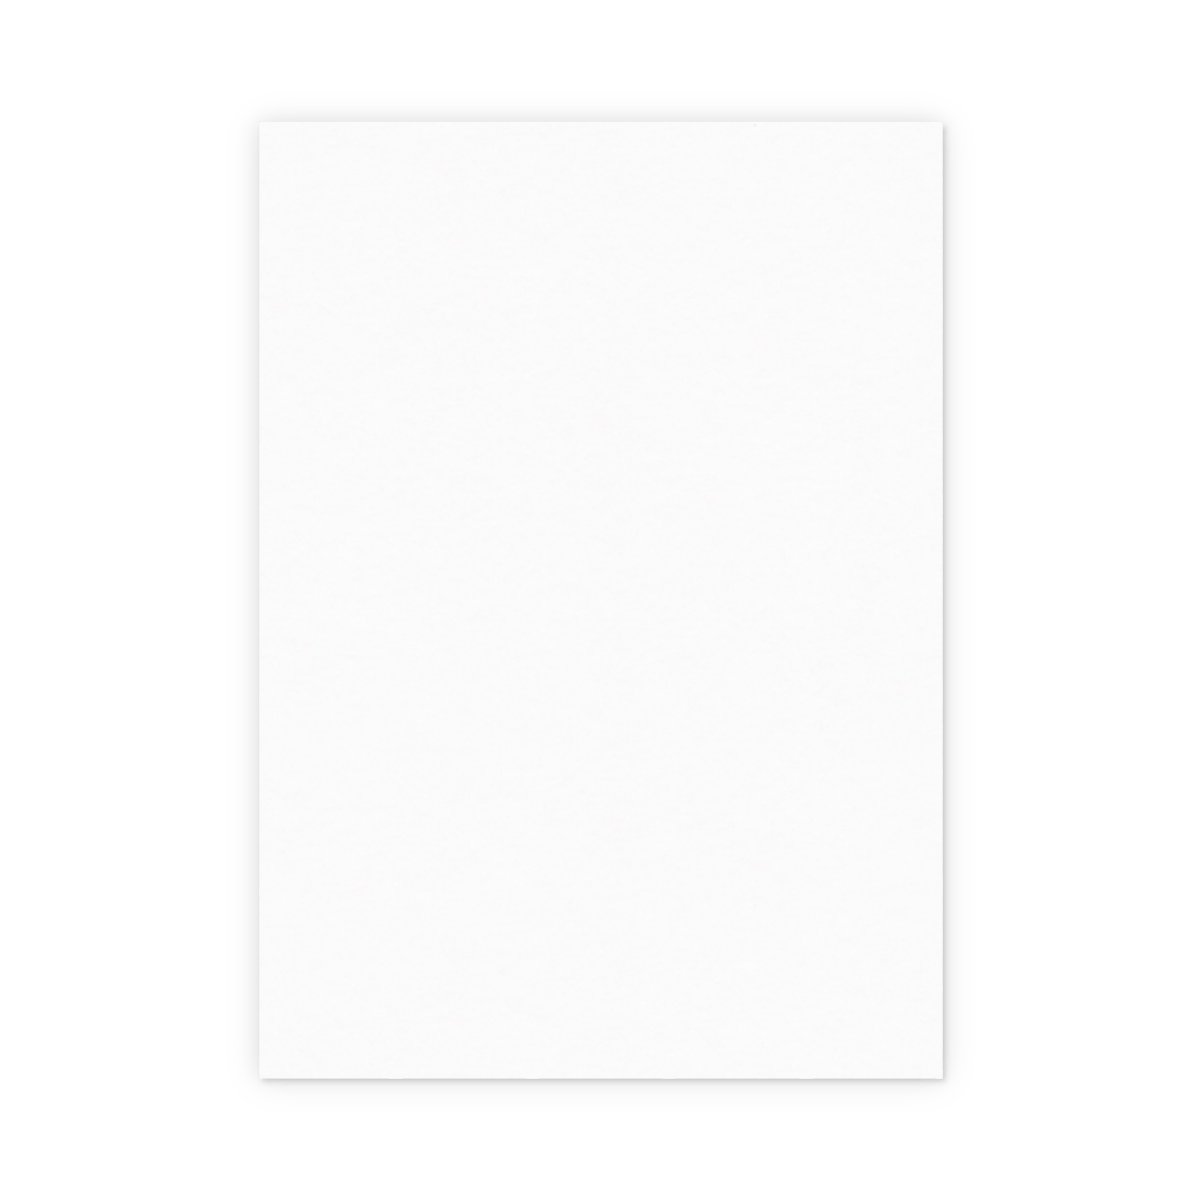 Https%3a%2f%2fwww.papier.com%2fproduct image%2f34652%2f4%2fshapes colours eight 8666 arriere 1519912899.png?ixlib=rb 1.1